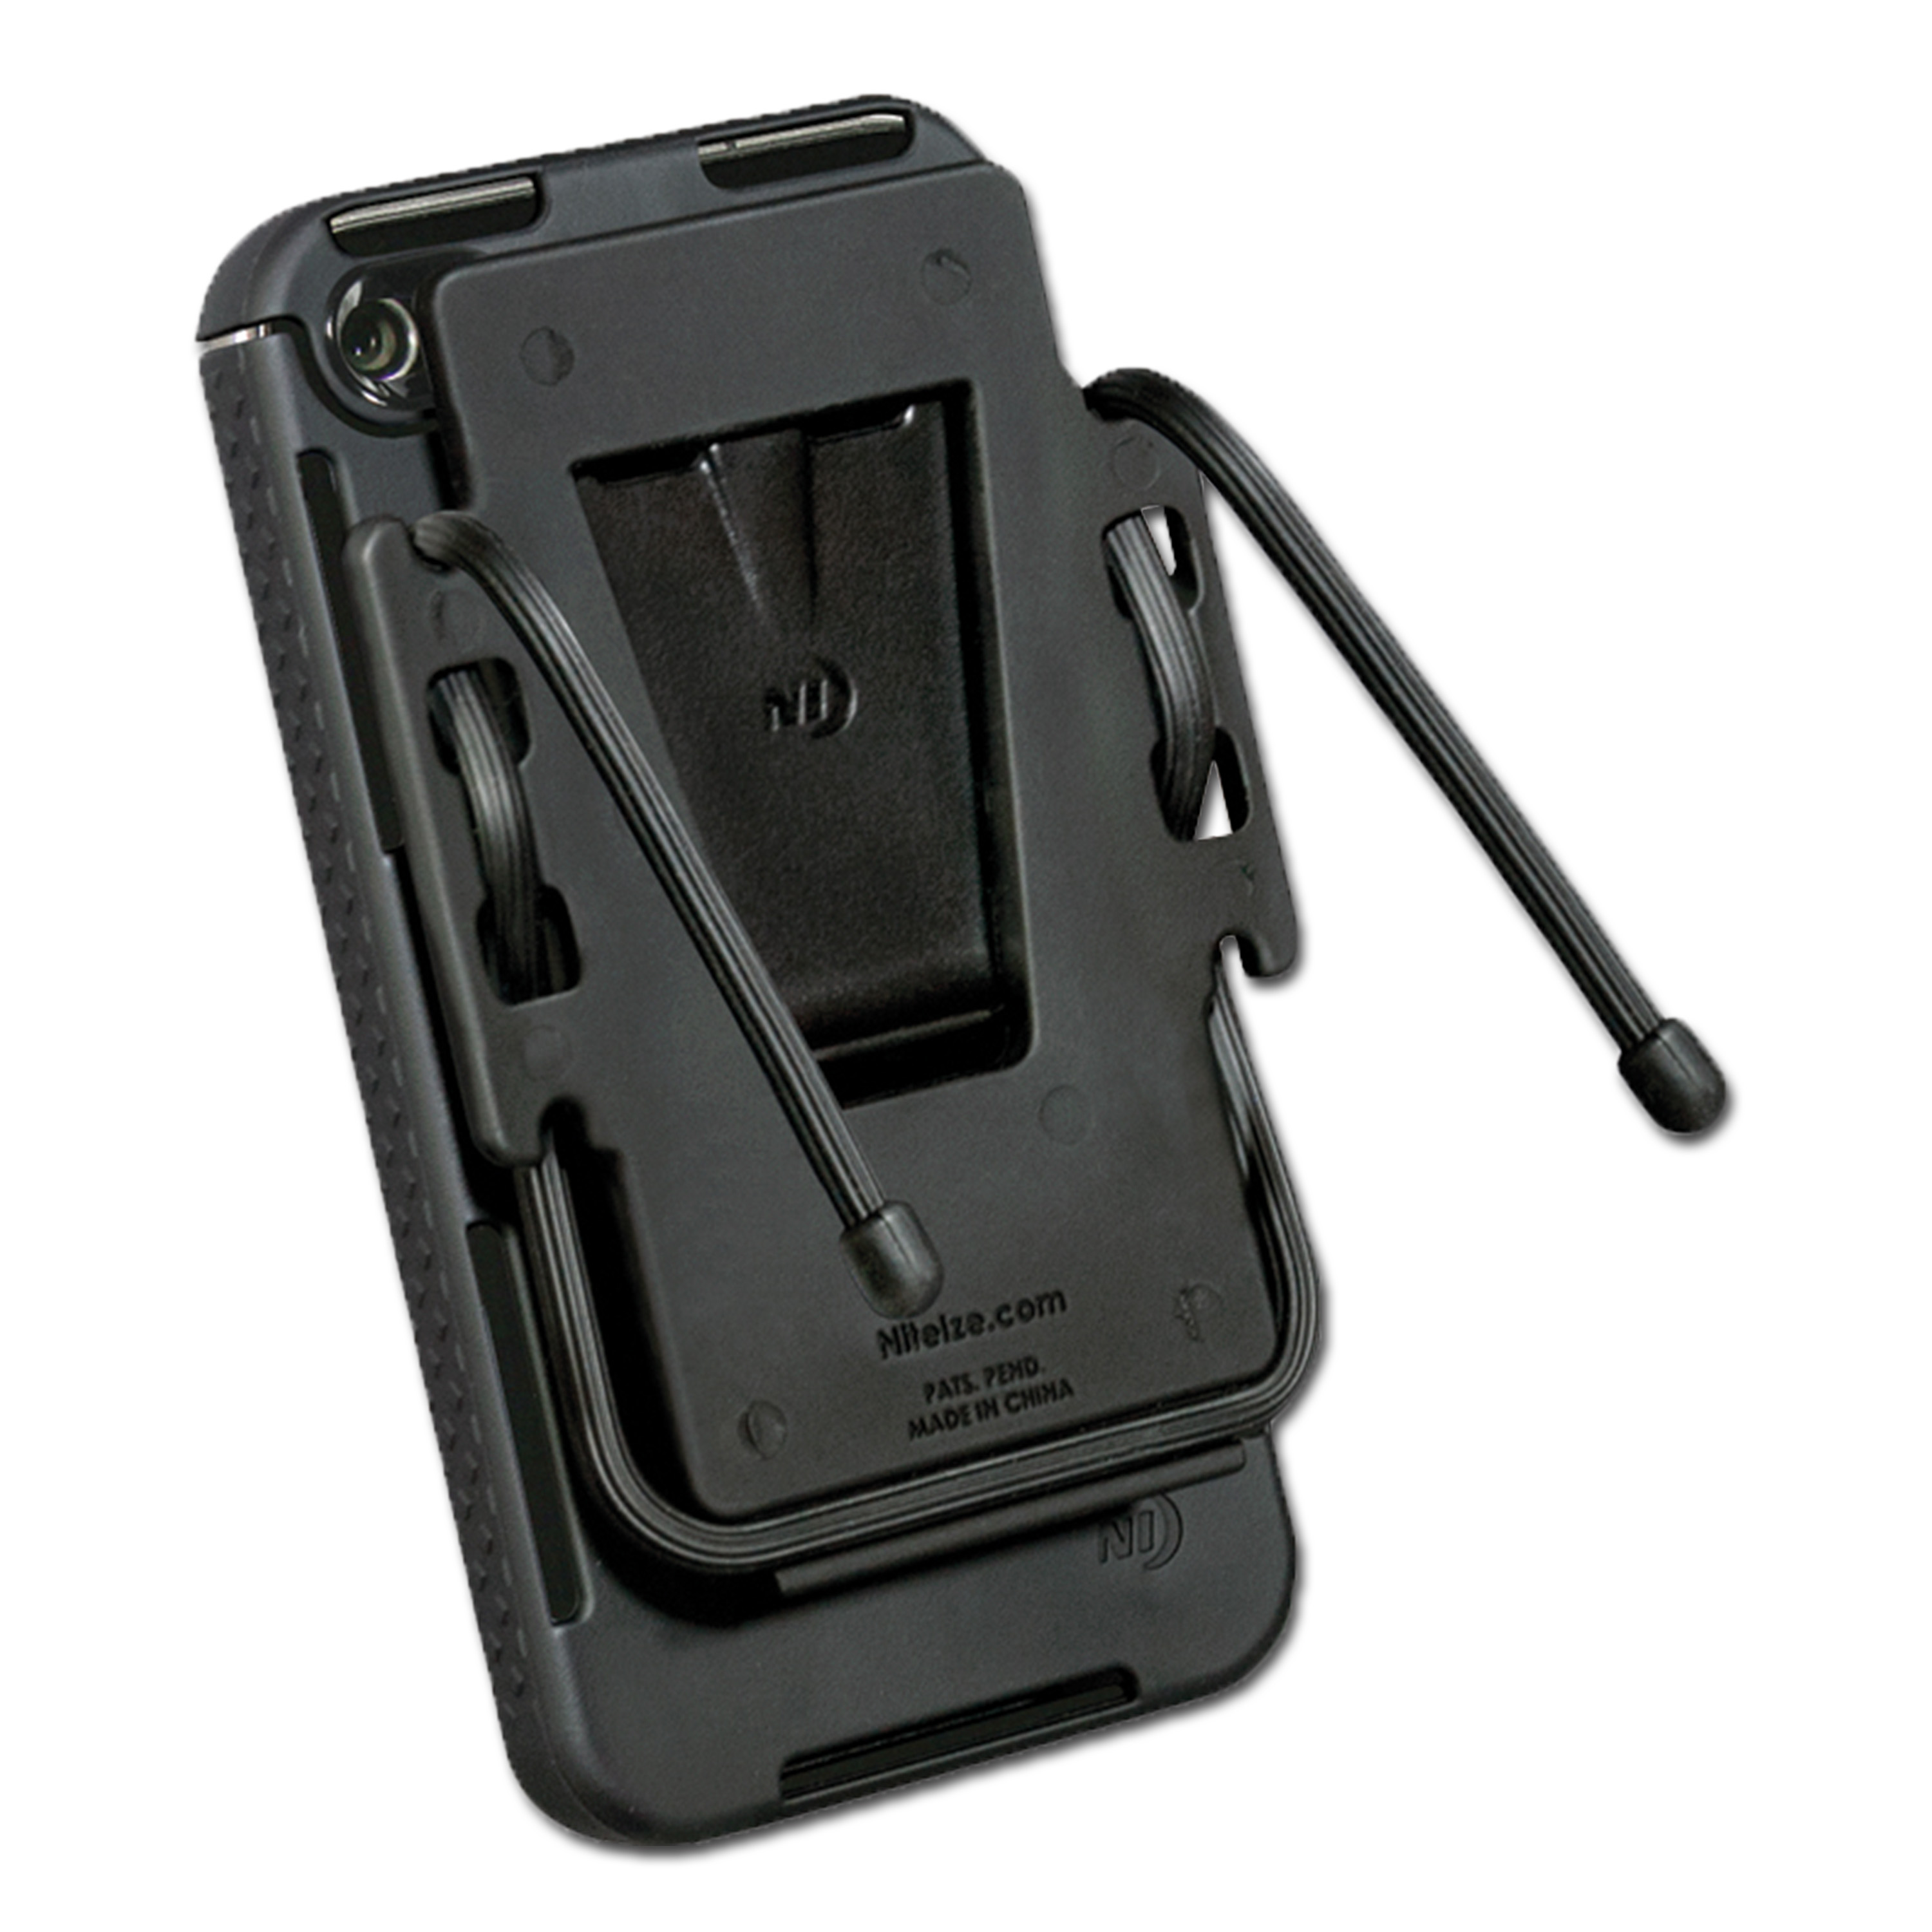 Combo Packet Nite Ize Connect Cradle iPhone 4/4S black